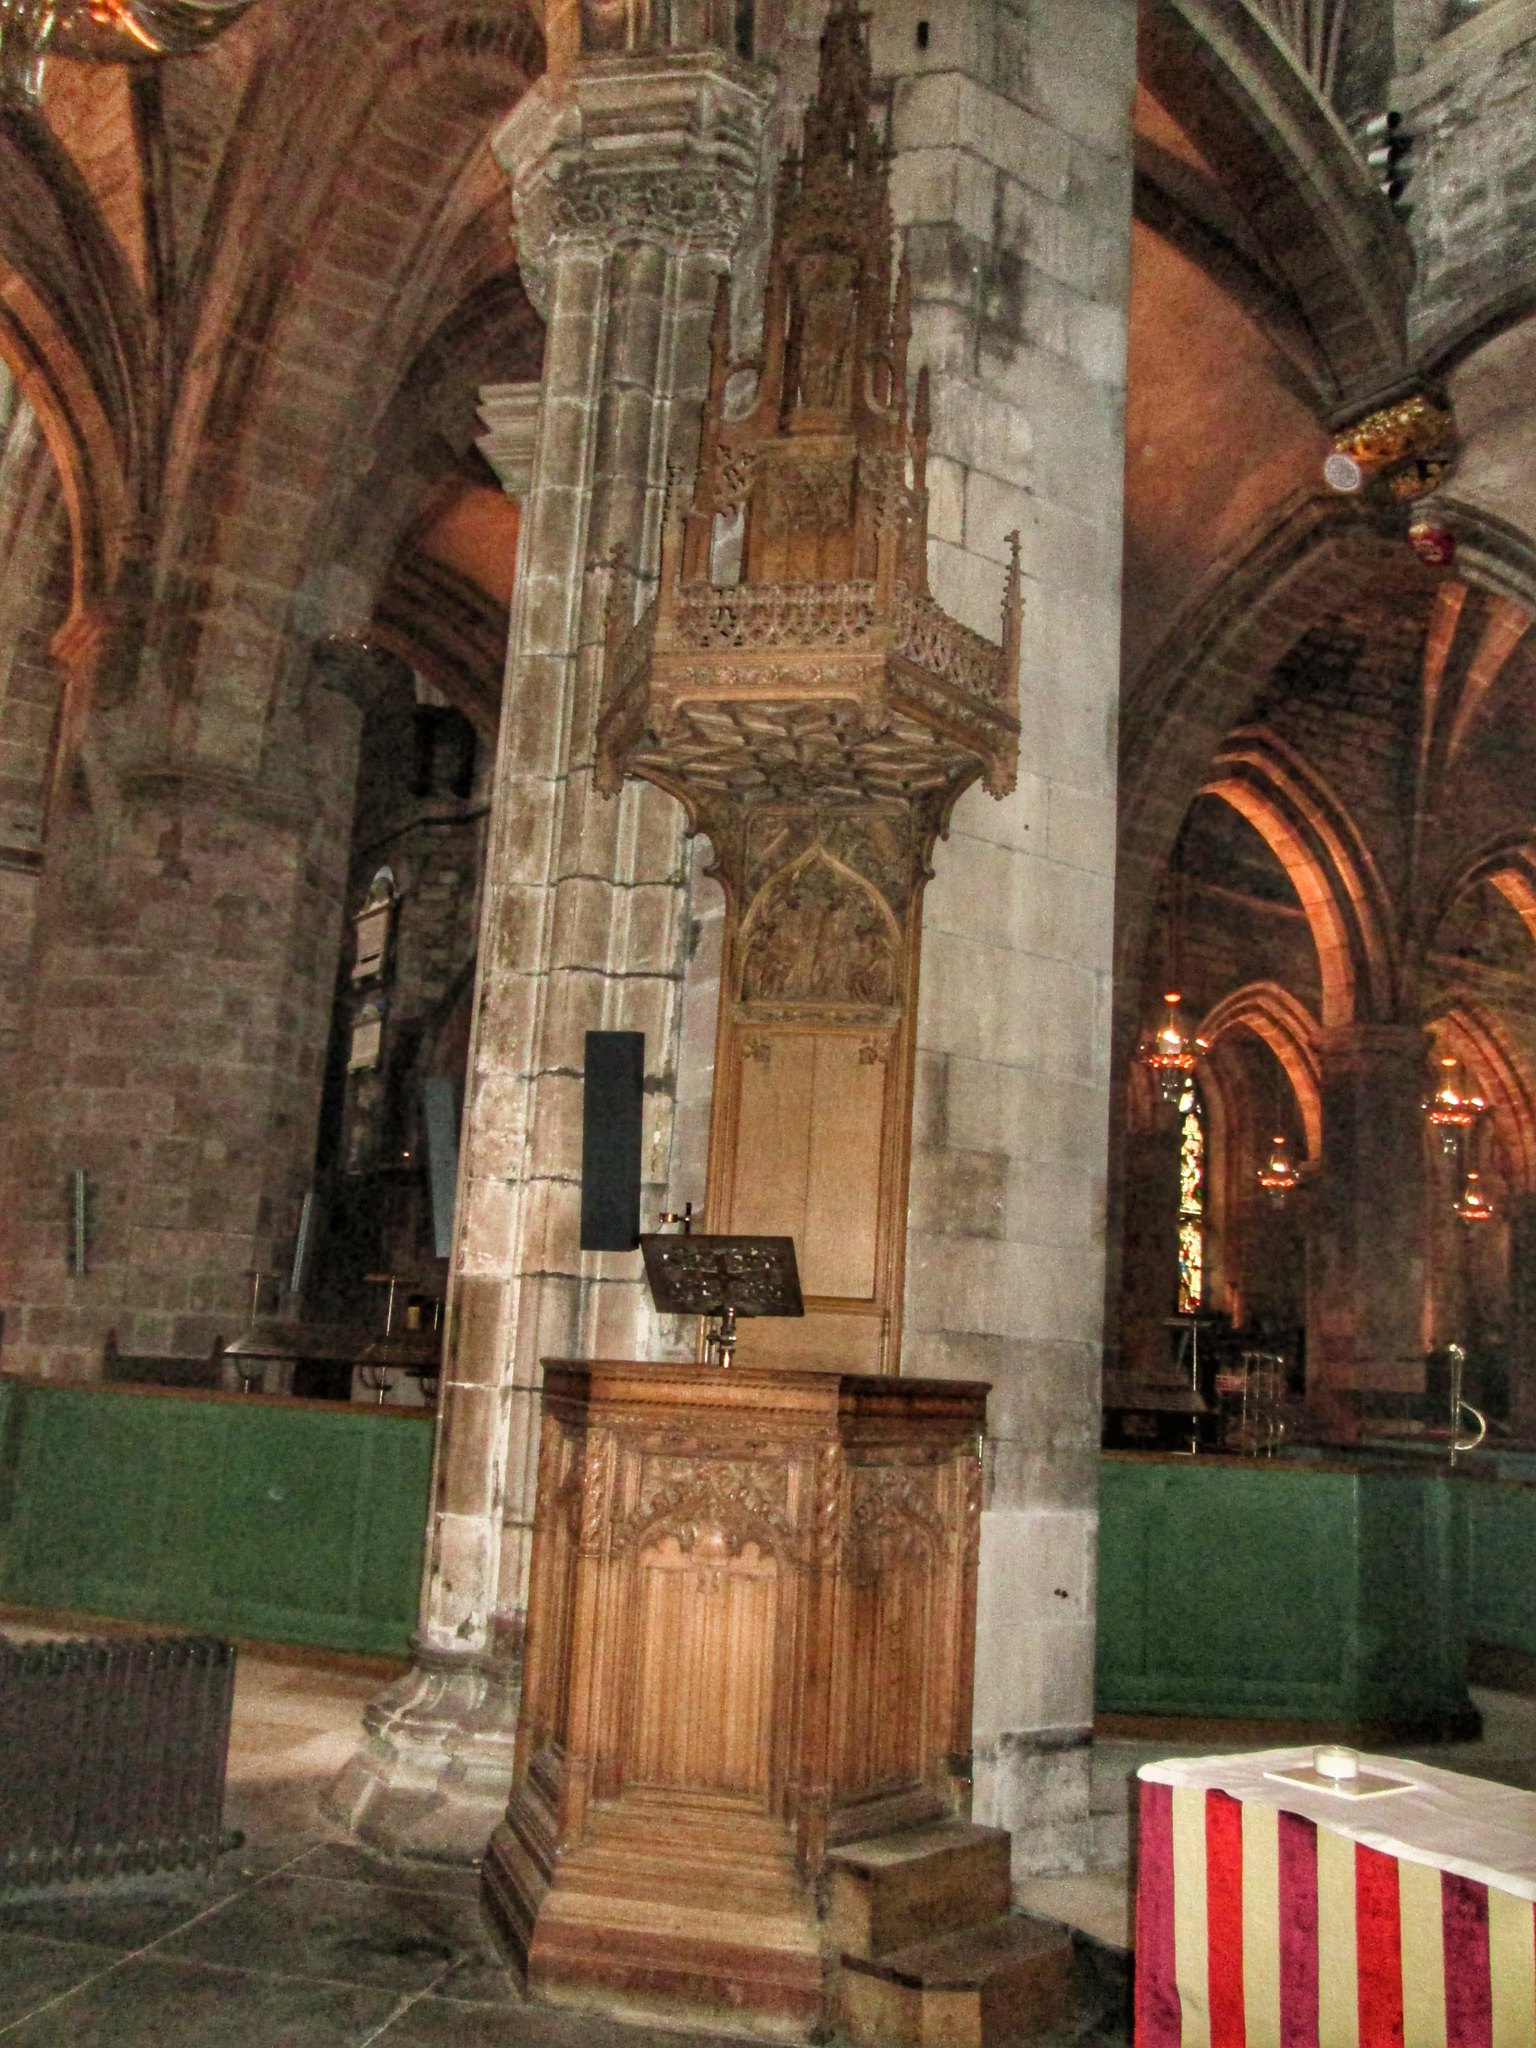 St Giles Cathedral Interior details